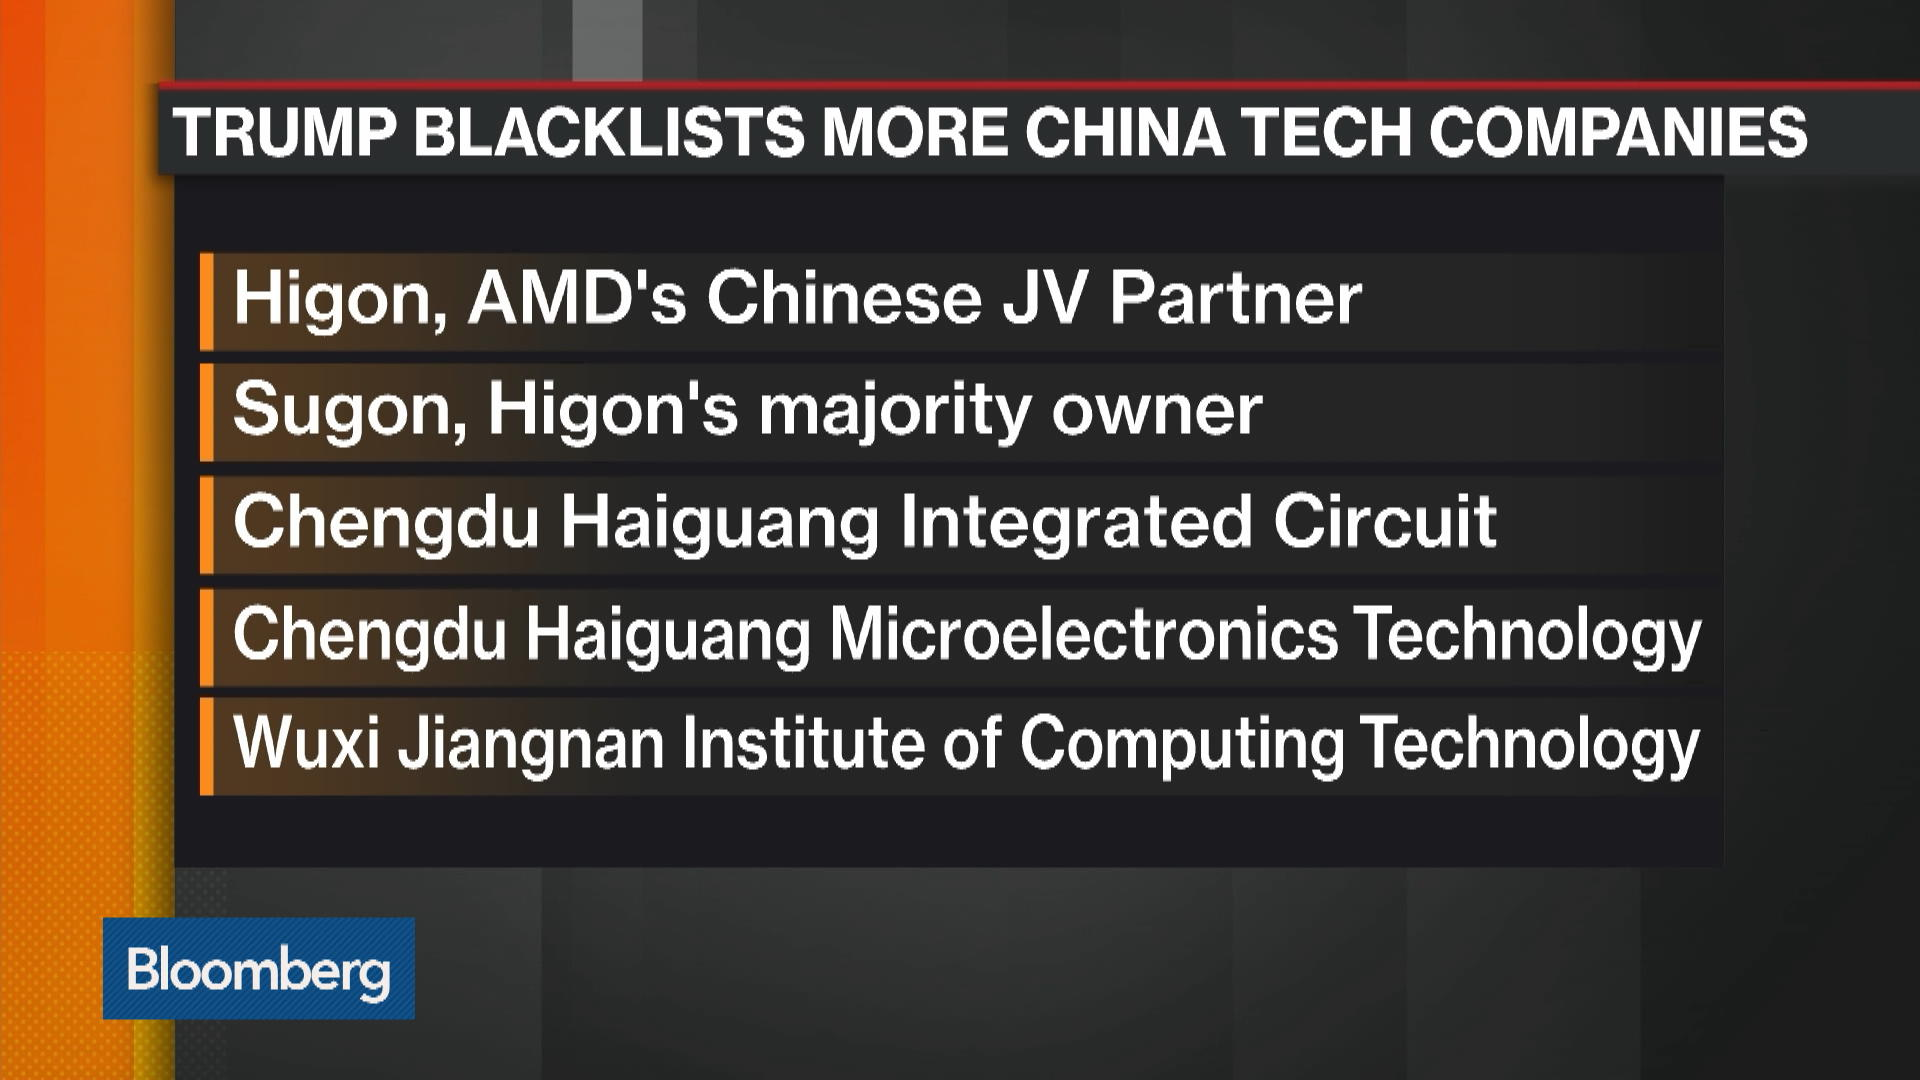 Trump Blacklists More China Tech Companies Days Before Xi